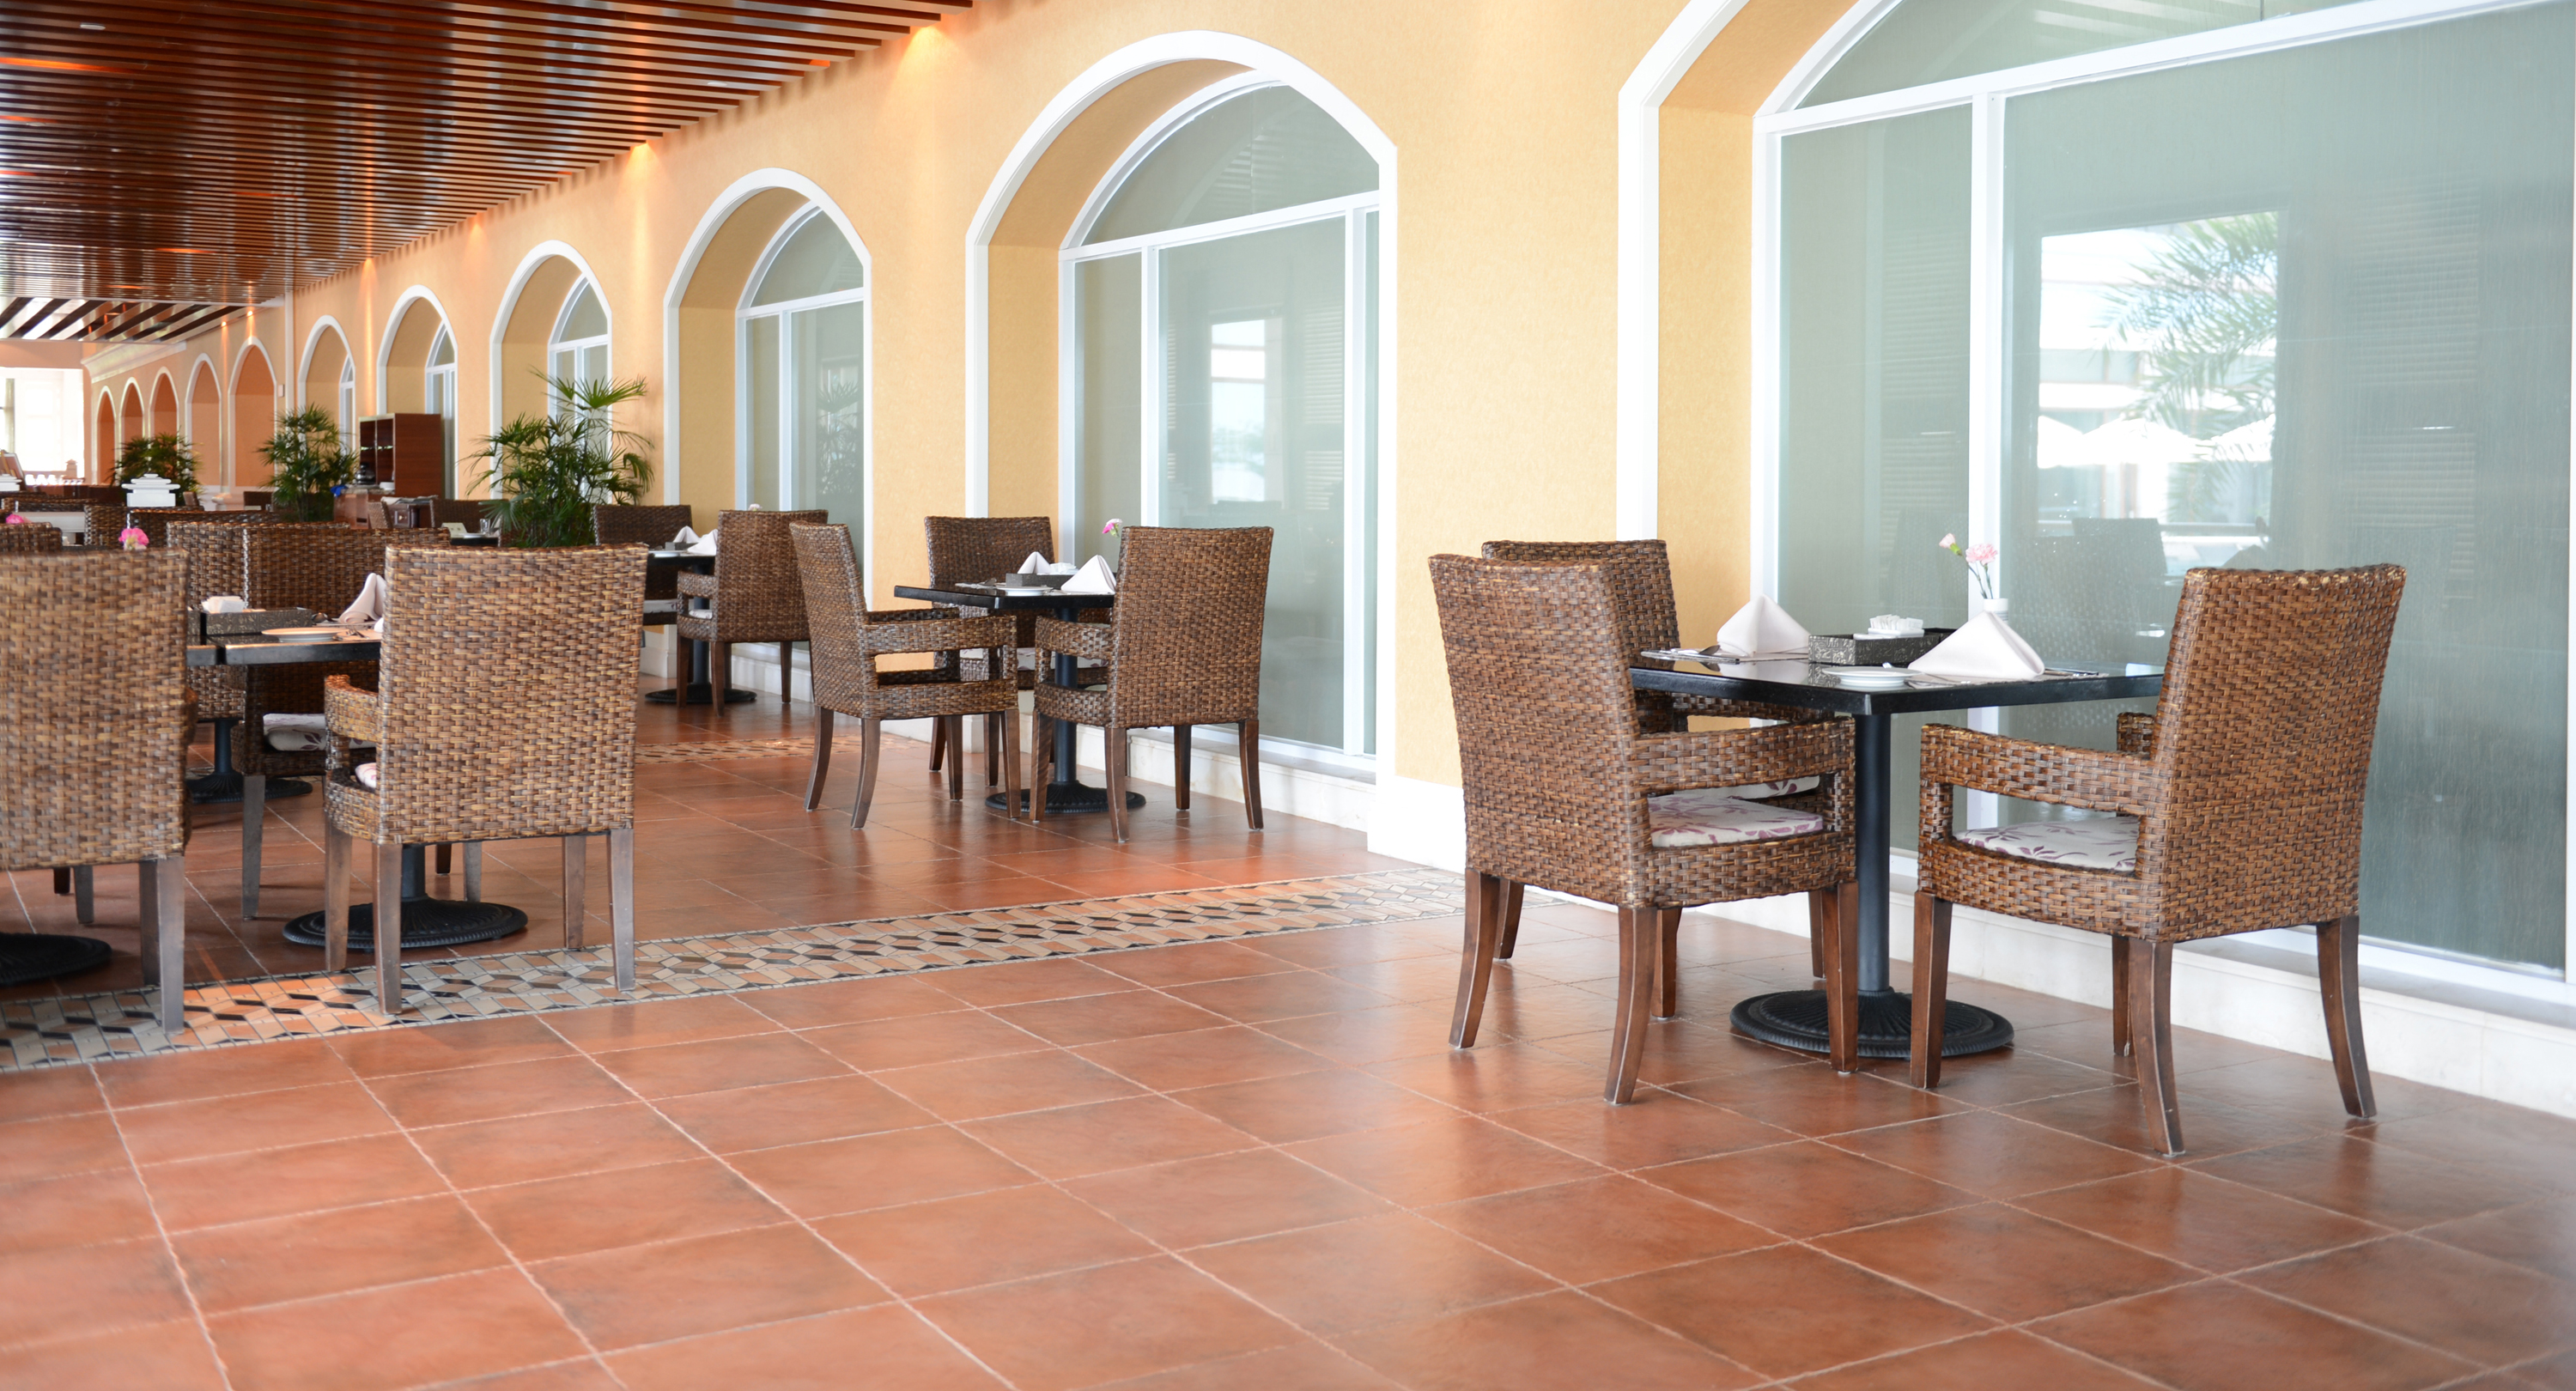 Commercial Tile And Grout Cleaning Orlando